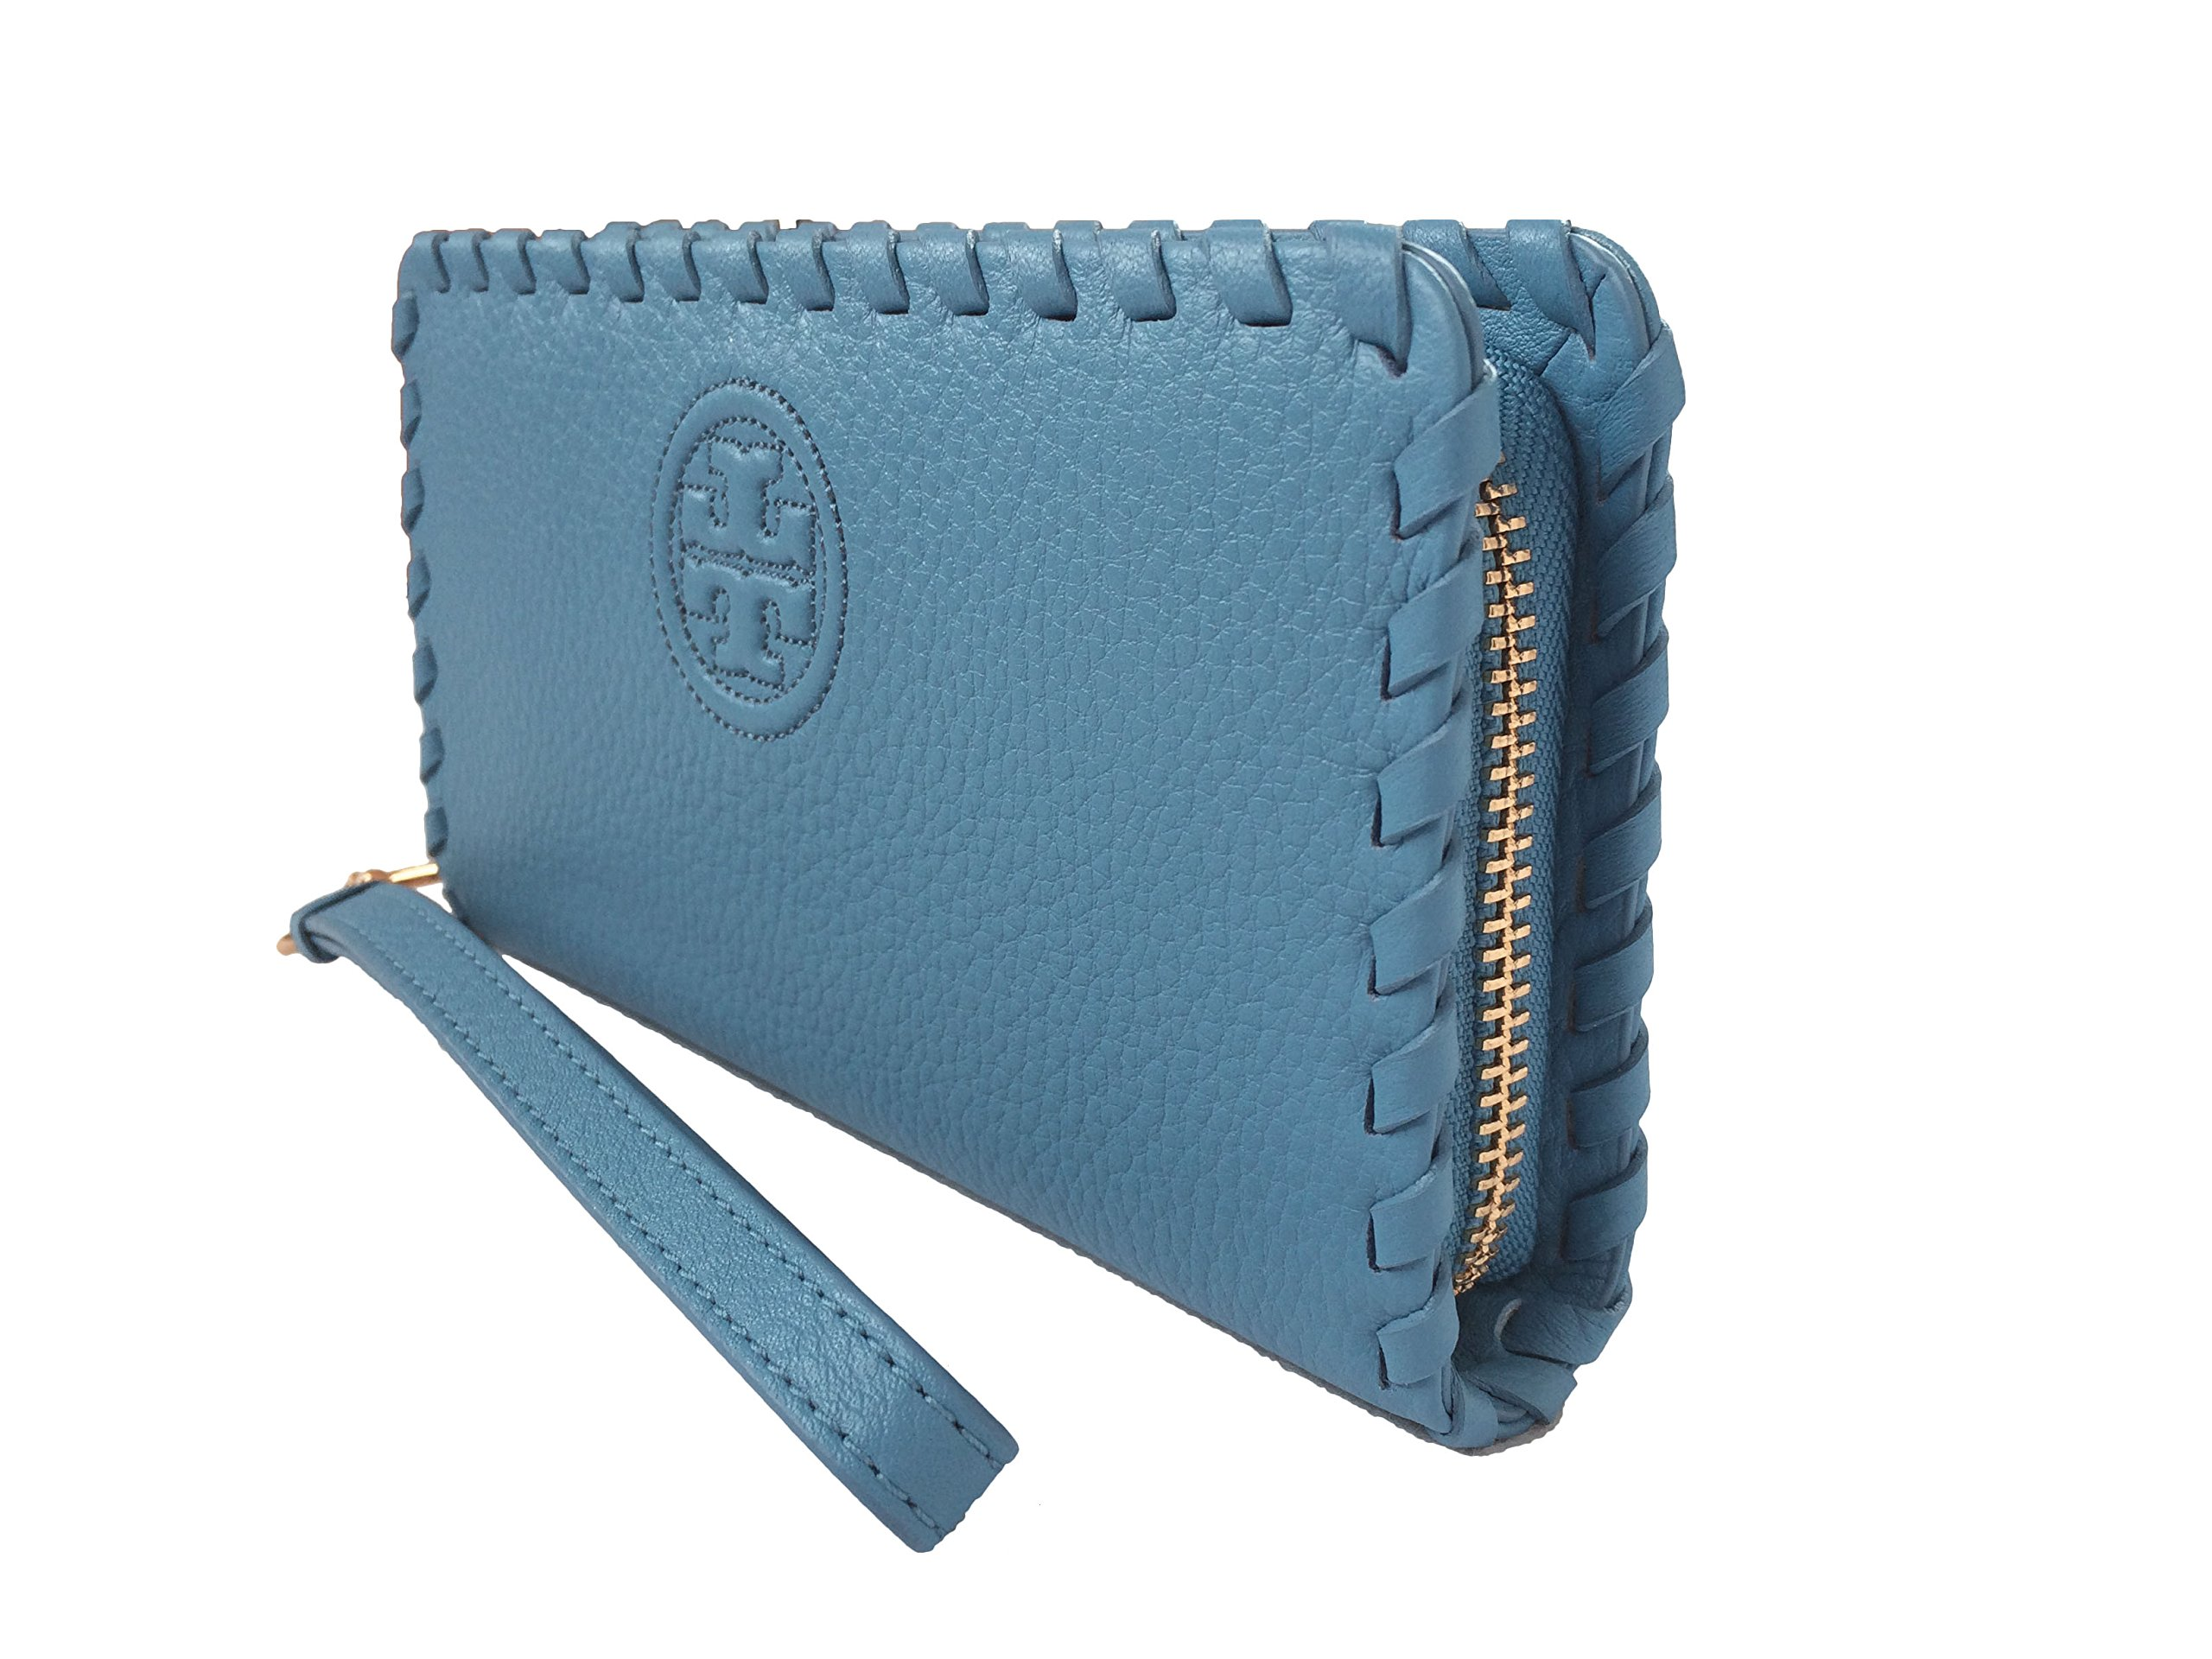 Tory Burch Marion Leather Smartphone Wristlet (Montego Blue) by Tory Burch (Image #5)